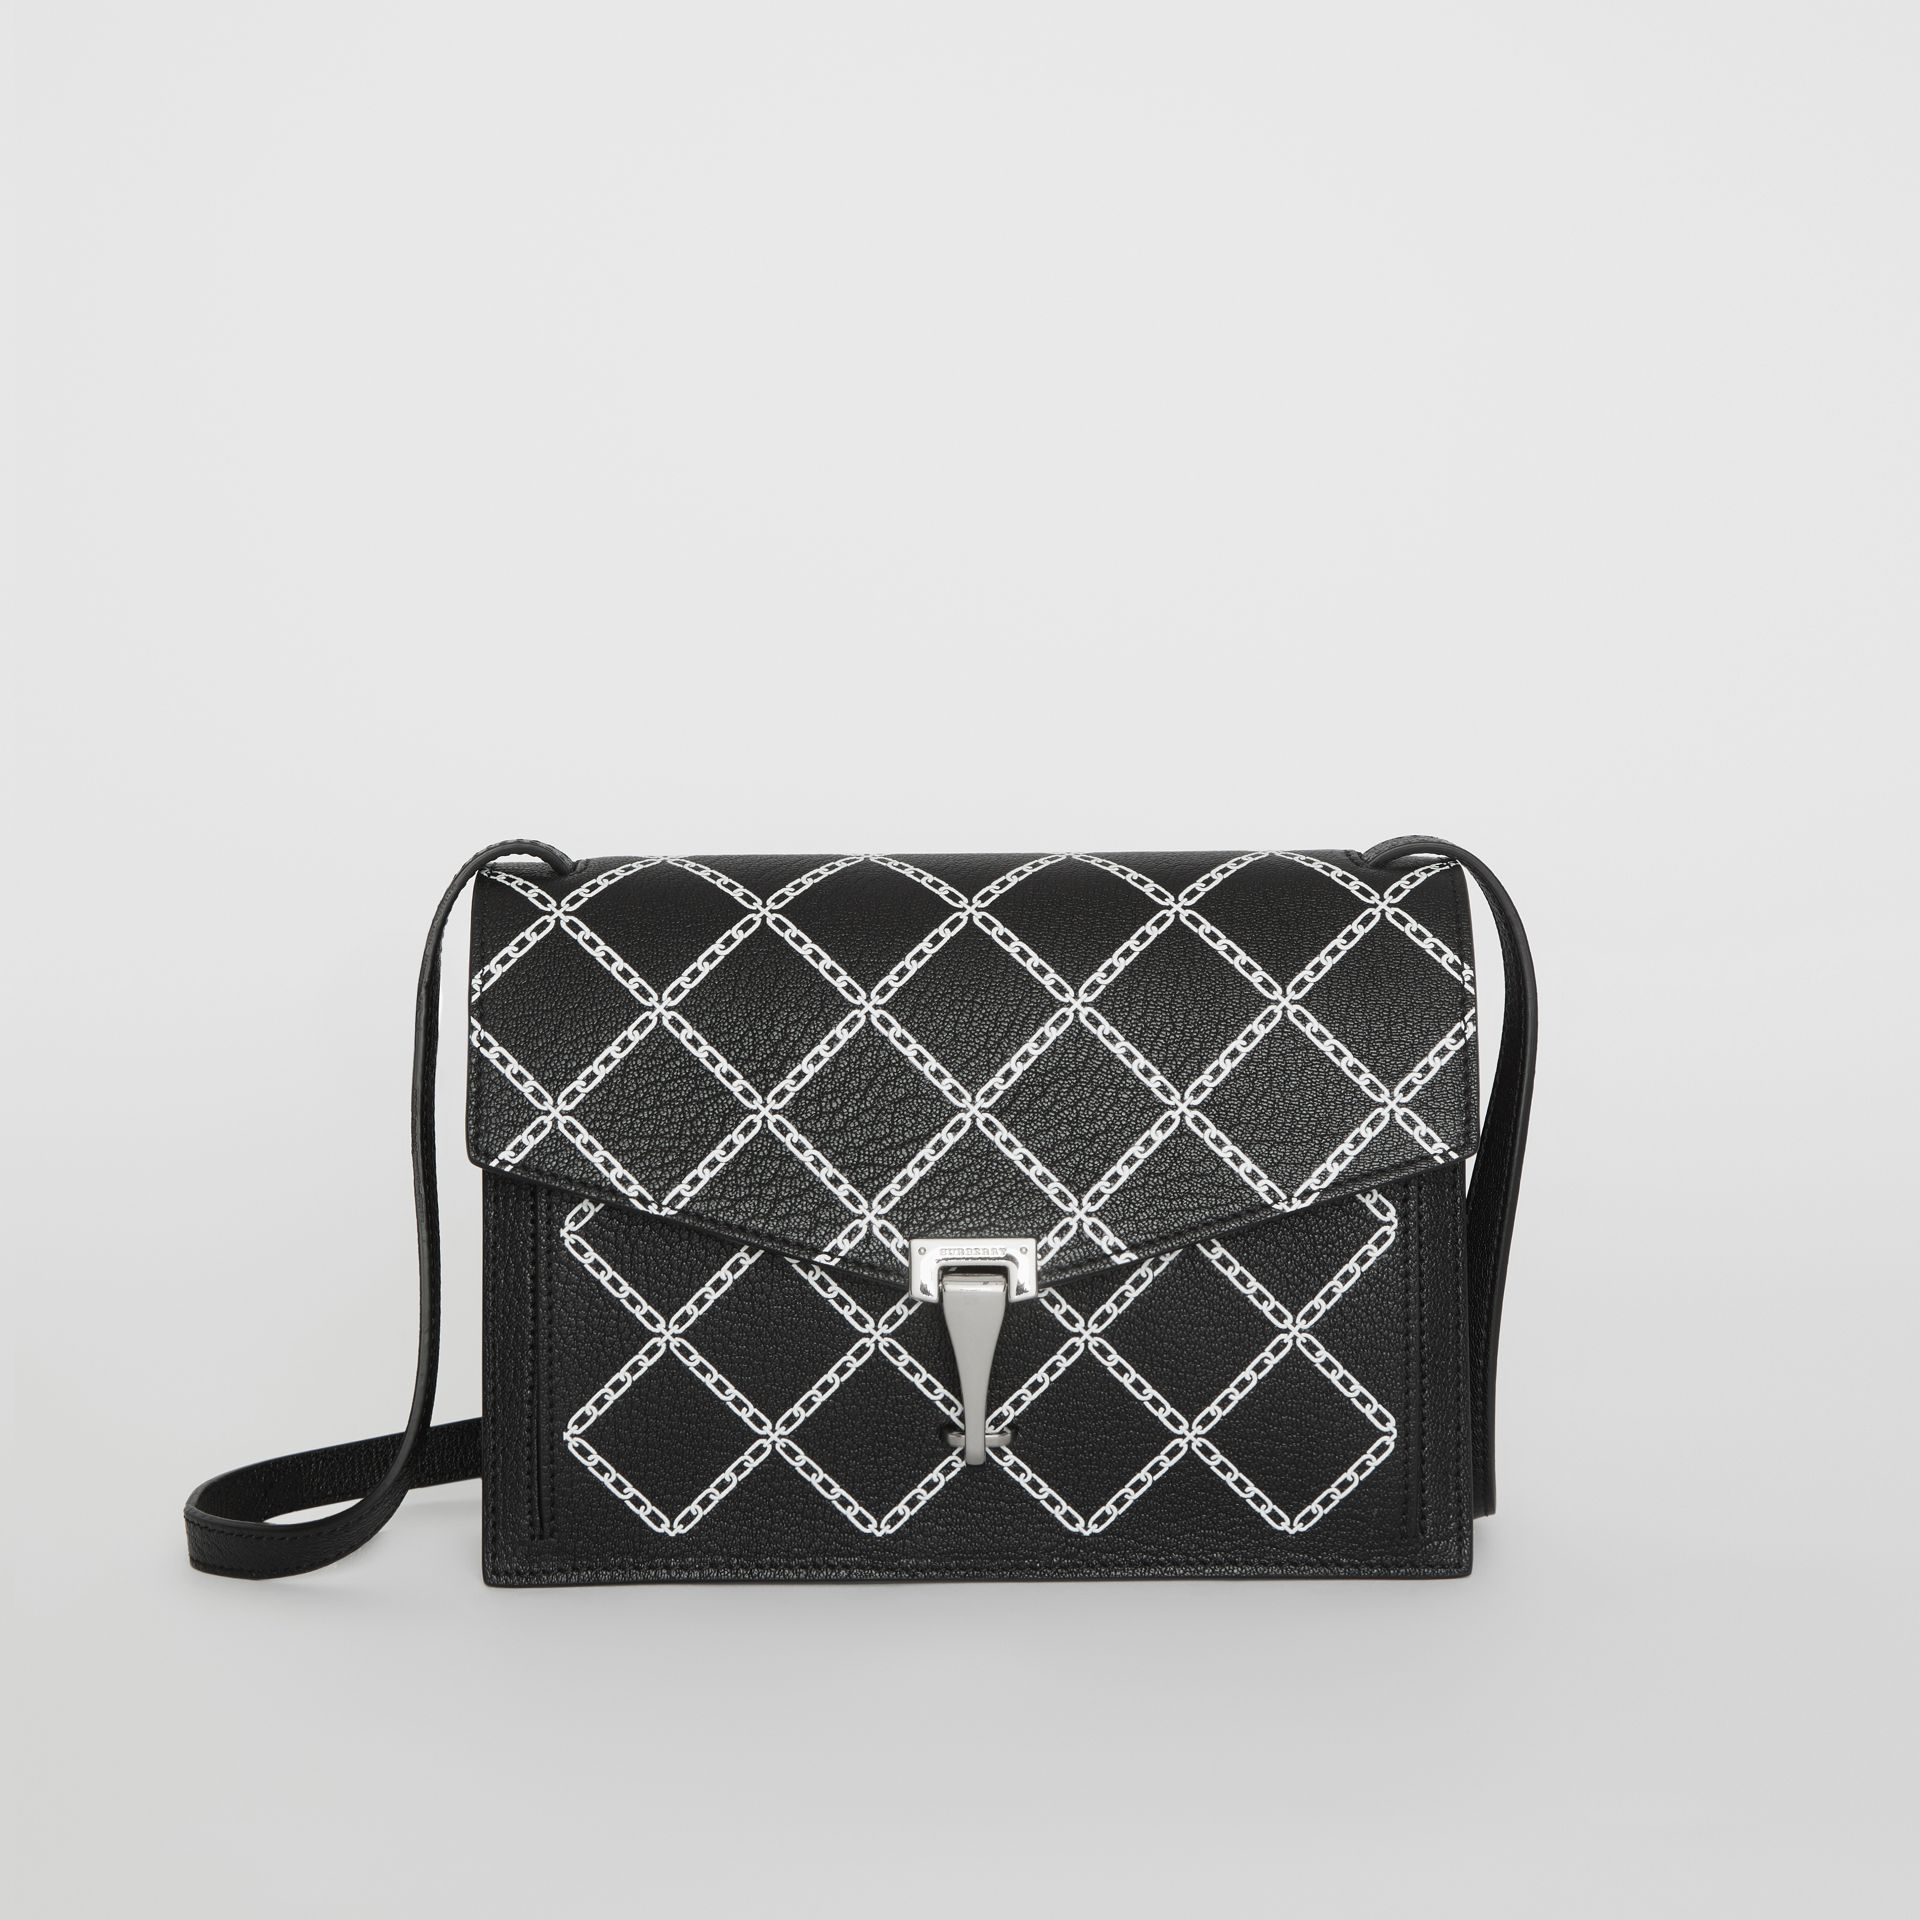 Small Link Print Leather Crossbody Bag in Black - Women | Burberry United States - gallery image 0